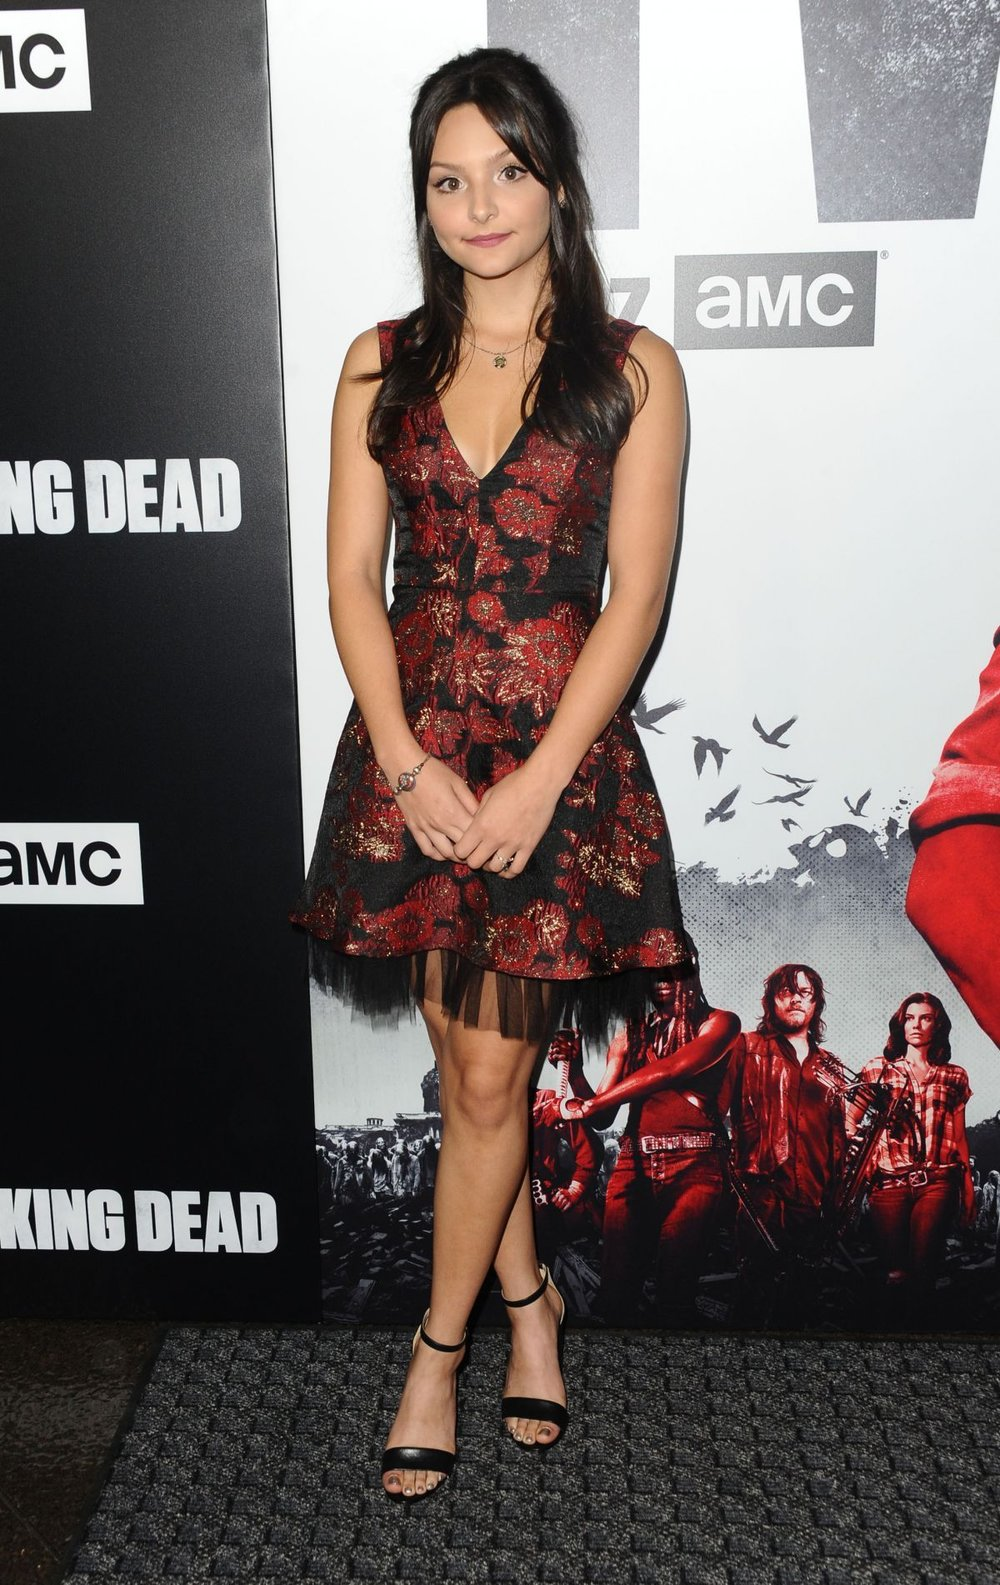 cassady-mcclincy-at-the-walking-dead-premiere-party-in-los-angeles-09-27-2018-1.jpg